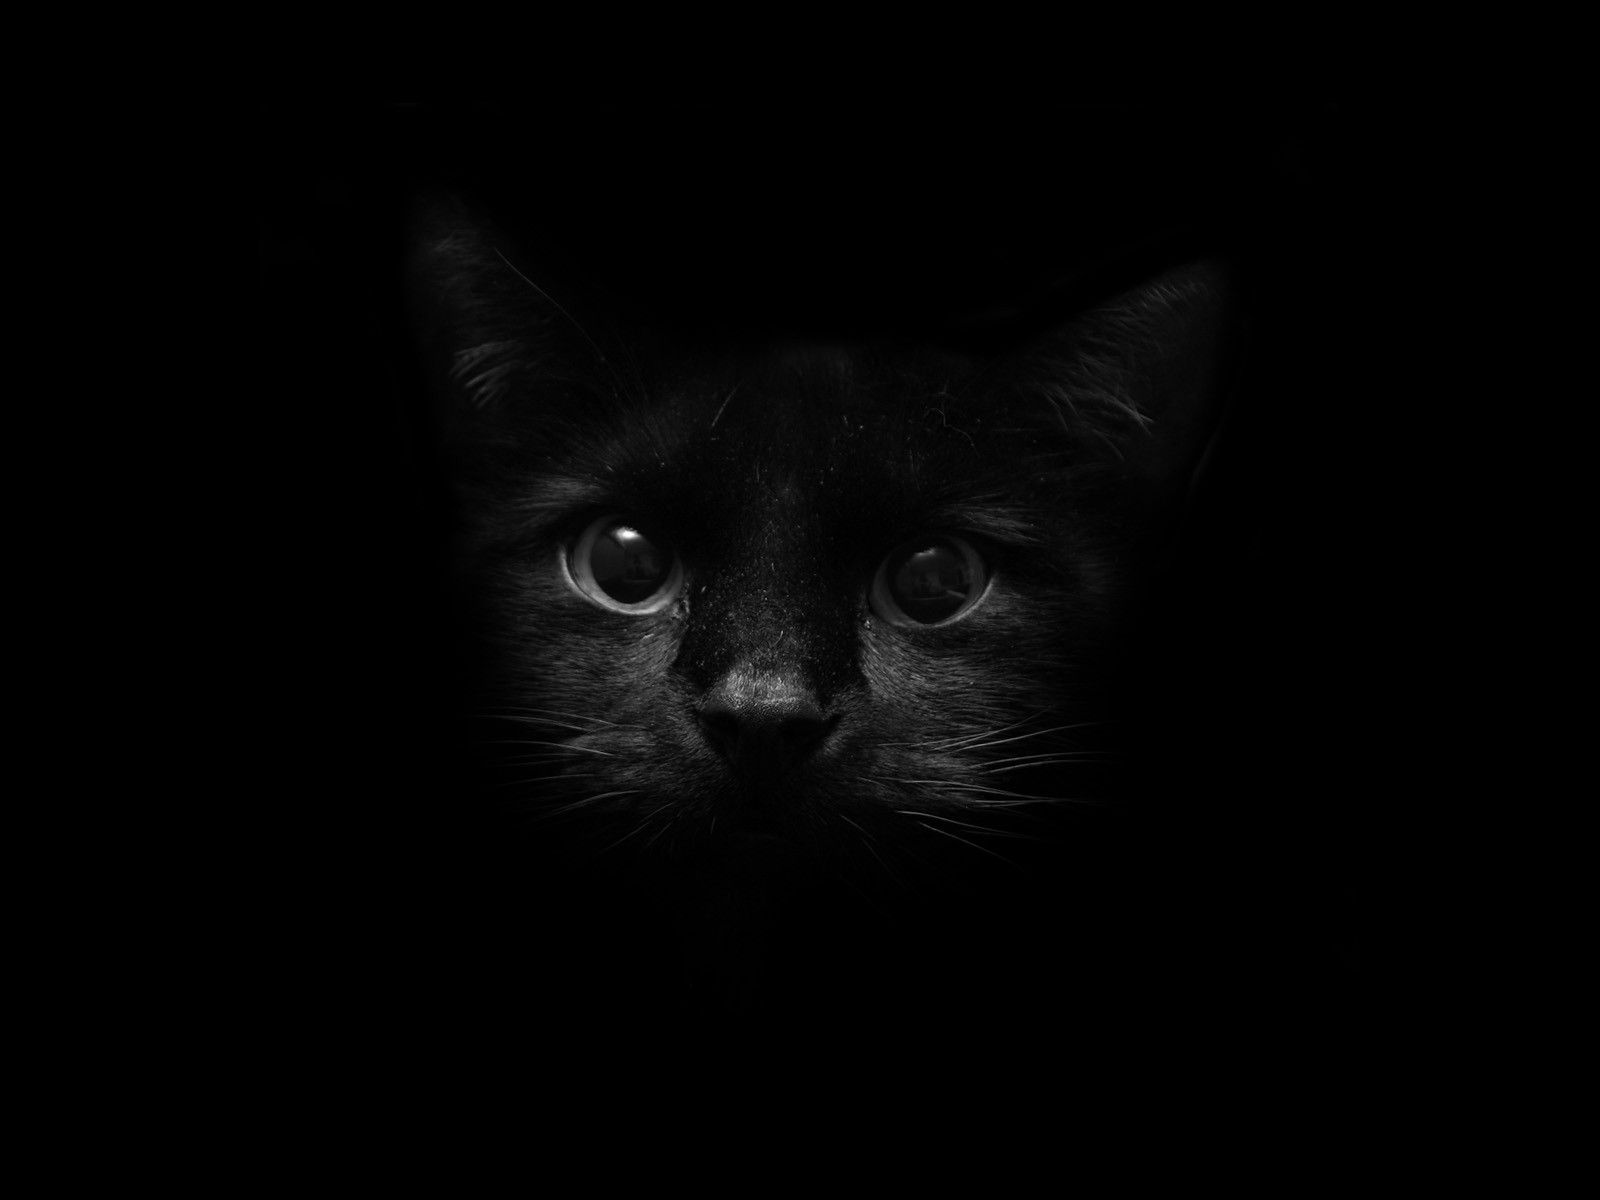 cat eyes in the dark | My Style | Cats, Cat wallpaper, Cute cats picture black and white library